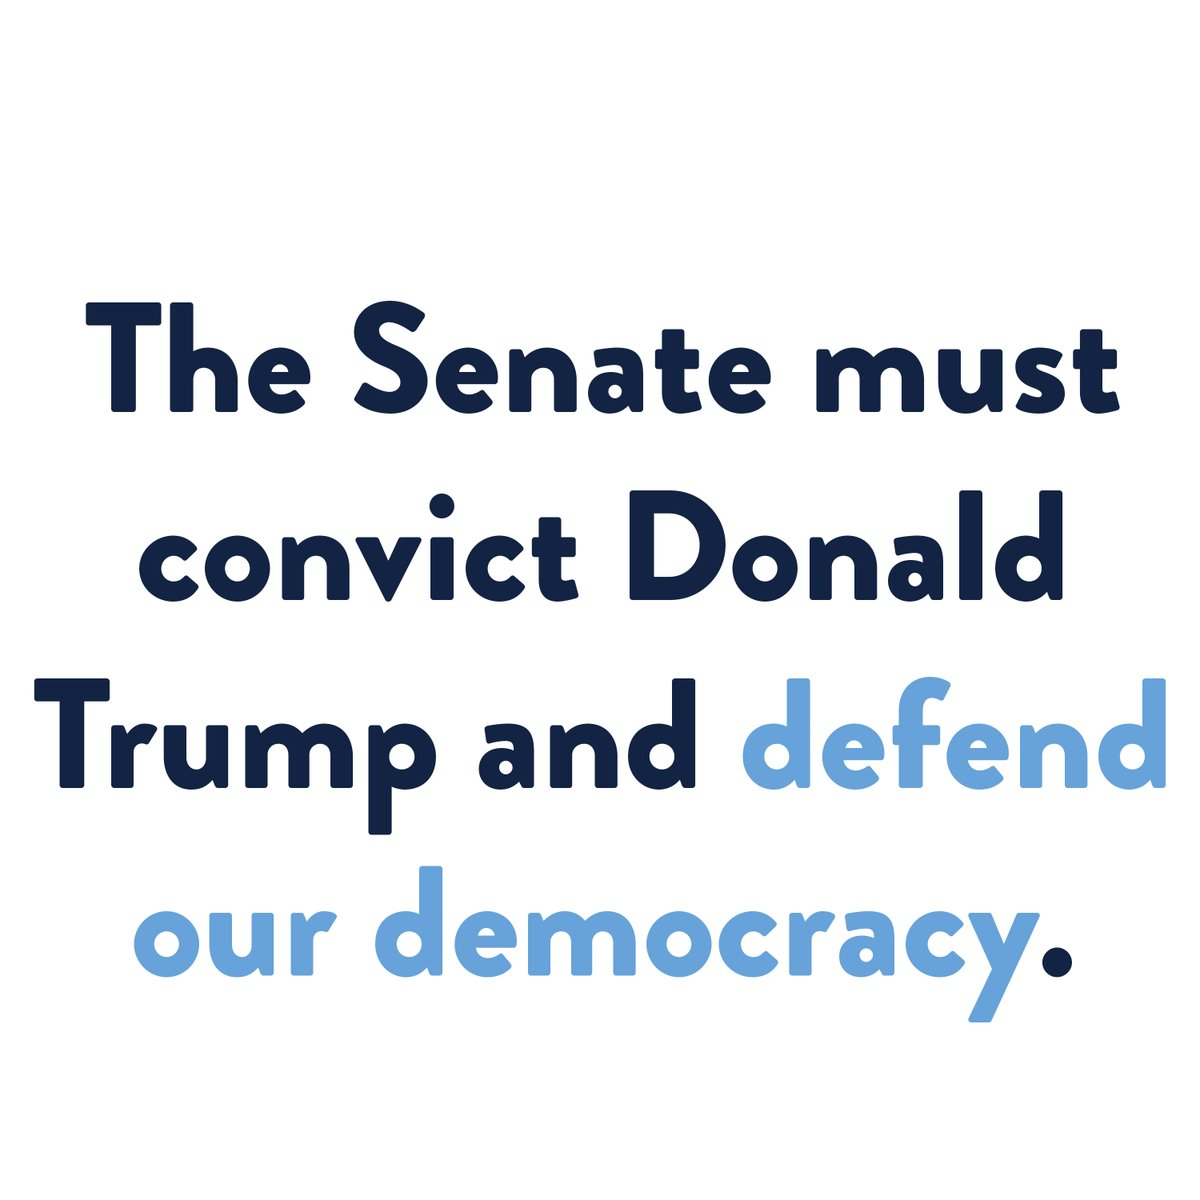 The Senate must convict Donald Trump and defend our democracy.